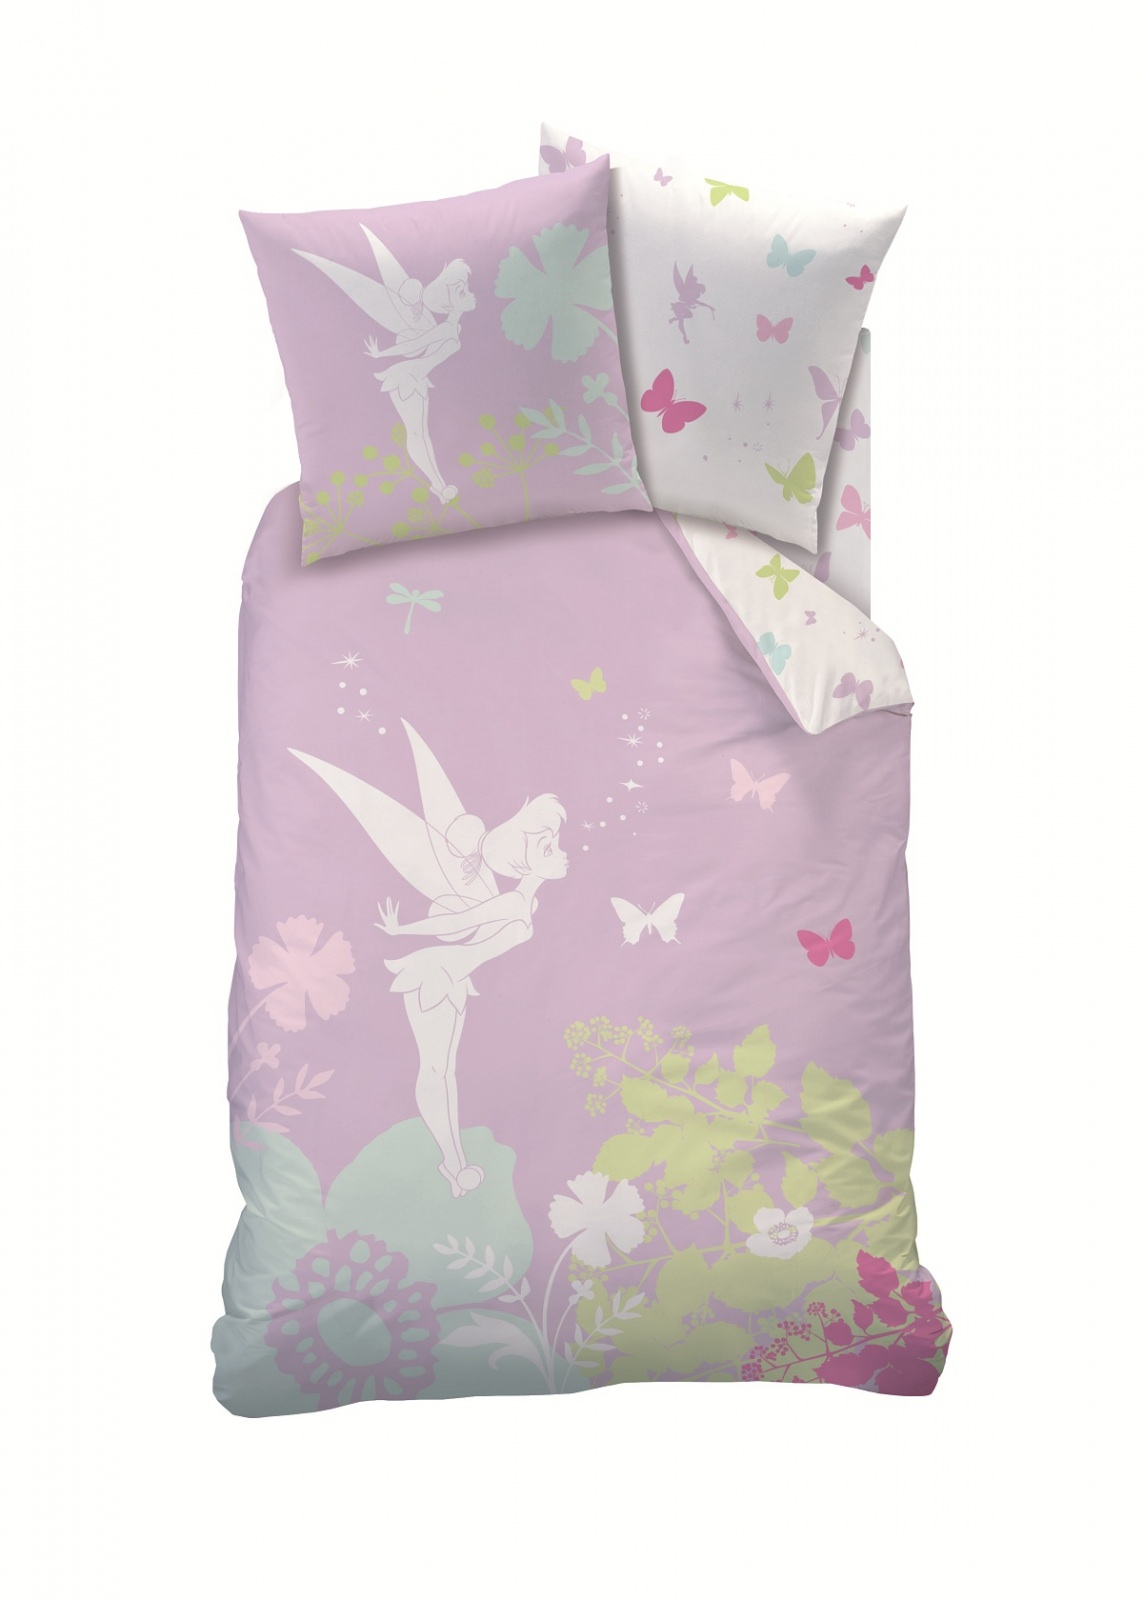 housse de couette disney fairies f e clochette 140x. Black Bedroom Furniture Sets. Home Design Ideas